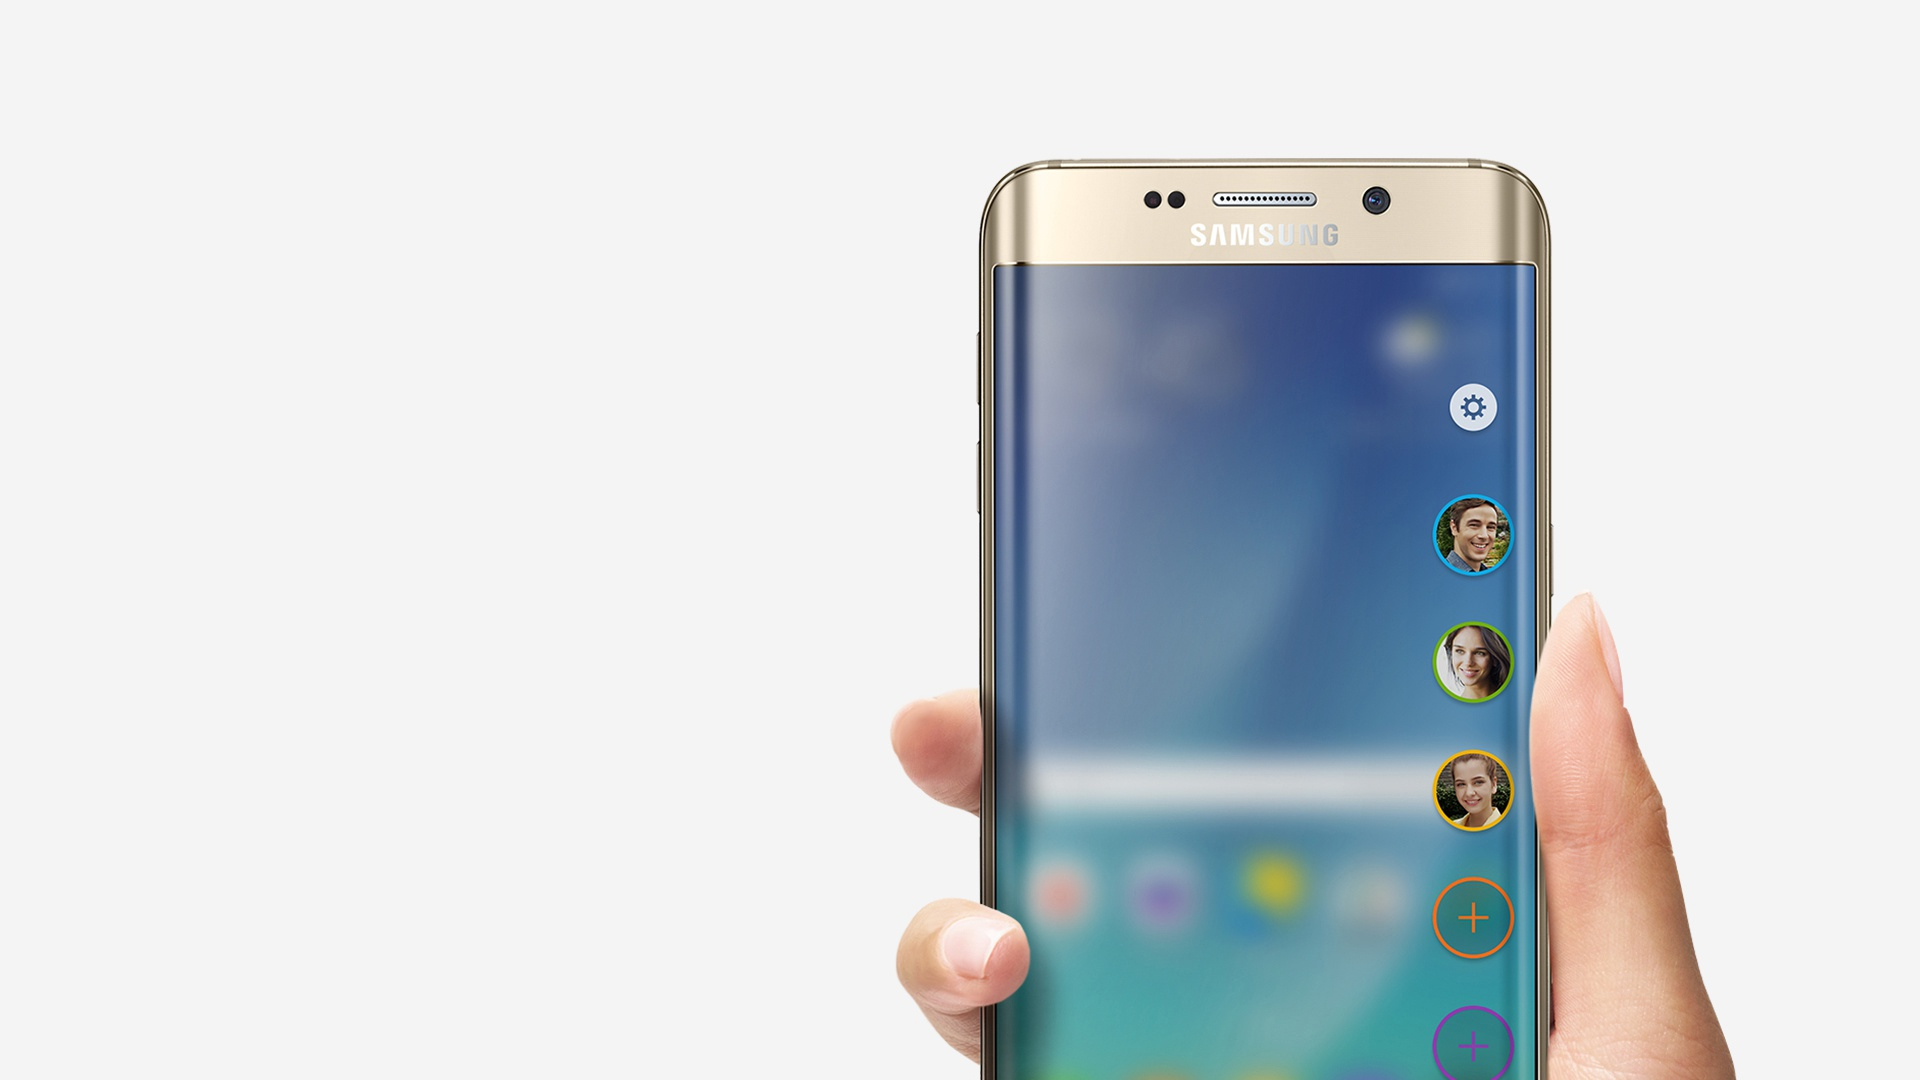 galaxy-s6-edge+_design_edge-ux_people-edge